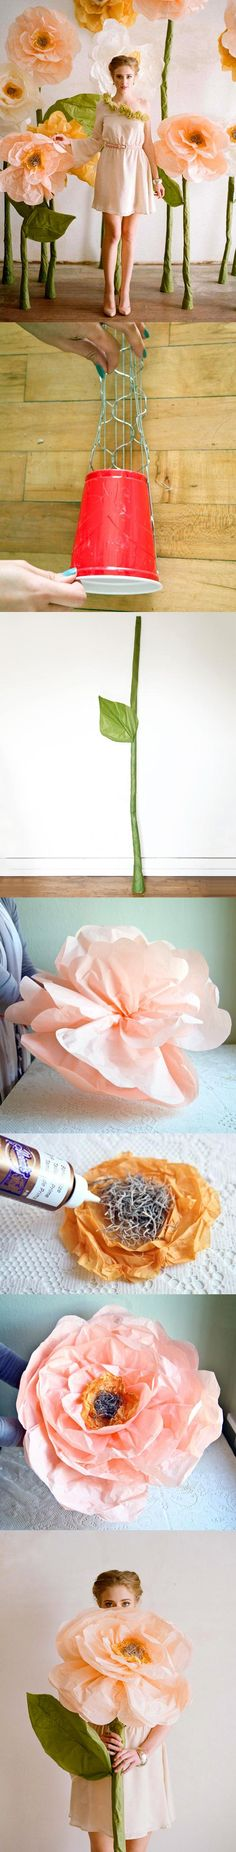 OMG MORE GIANT FLOWERS so cool  Giant Tissue Flower | Tutorial (some steps)